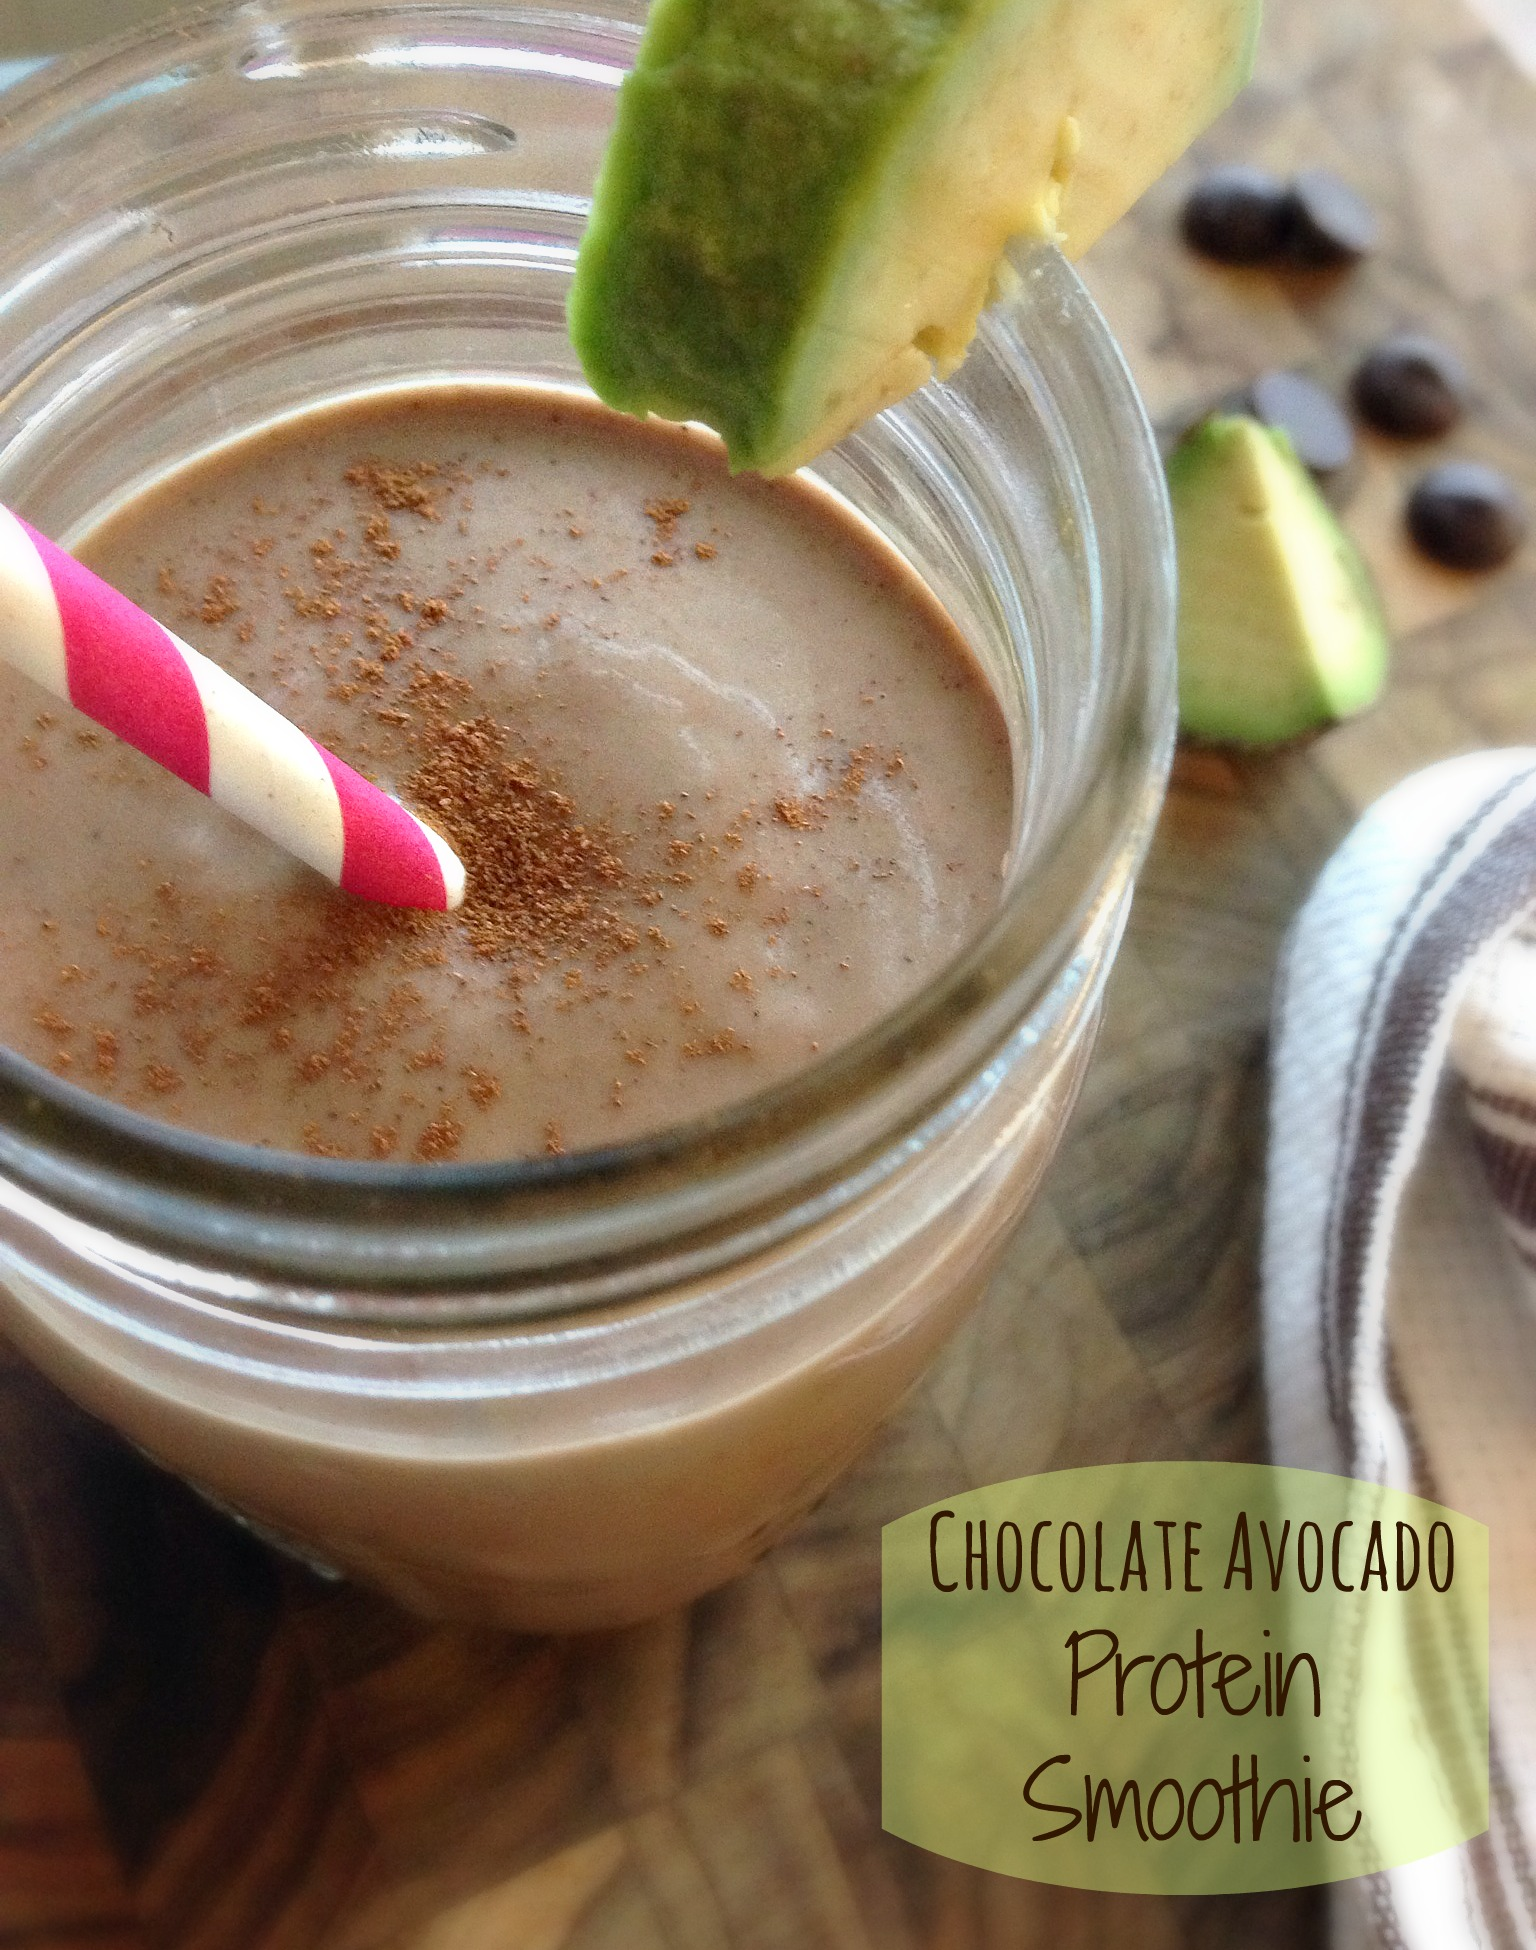 Chocolate Avocado Protein Smoothie